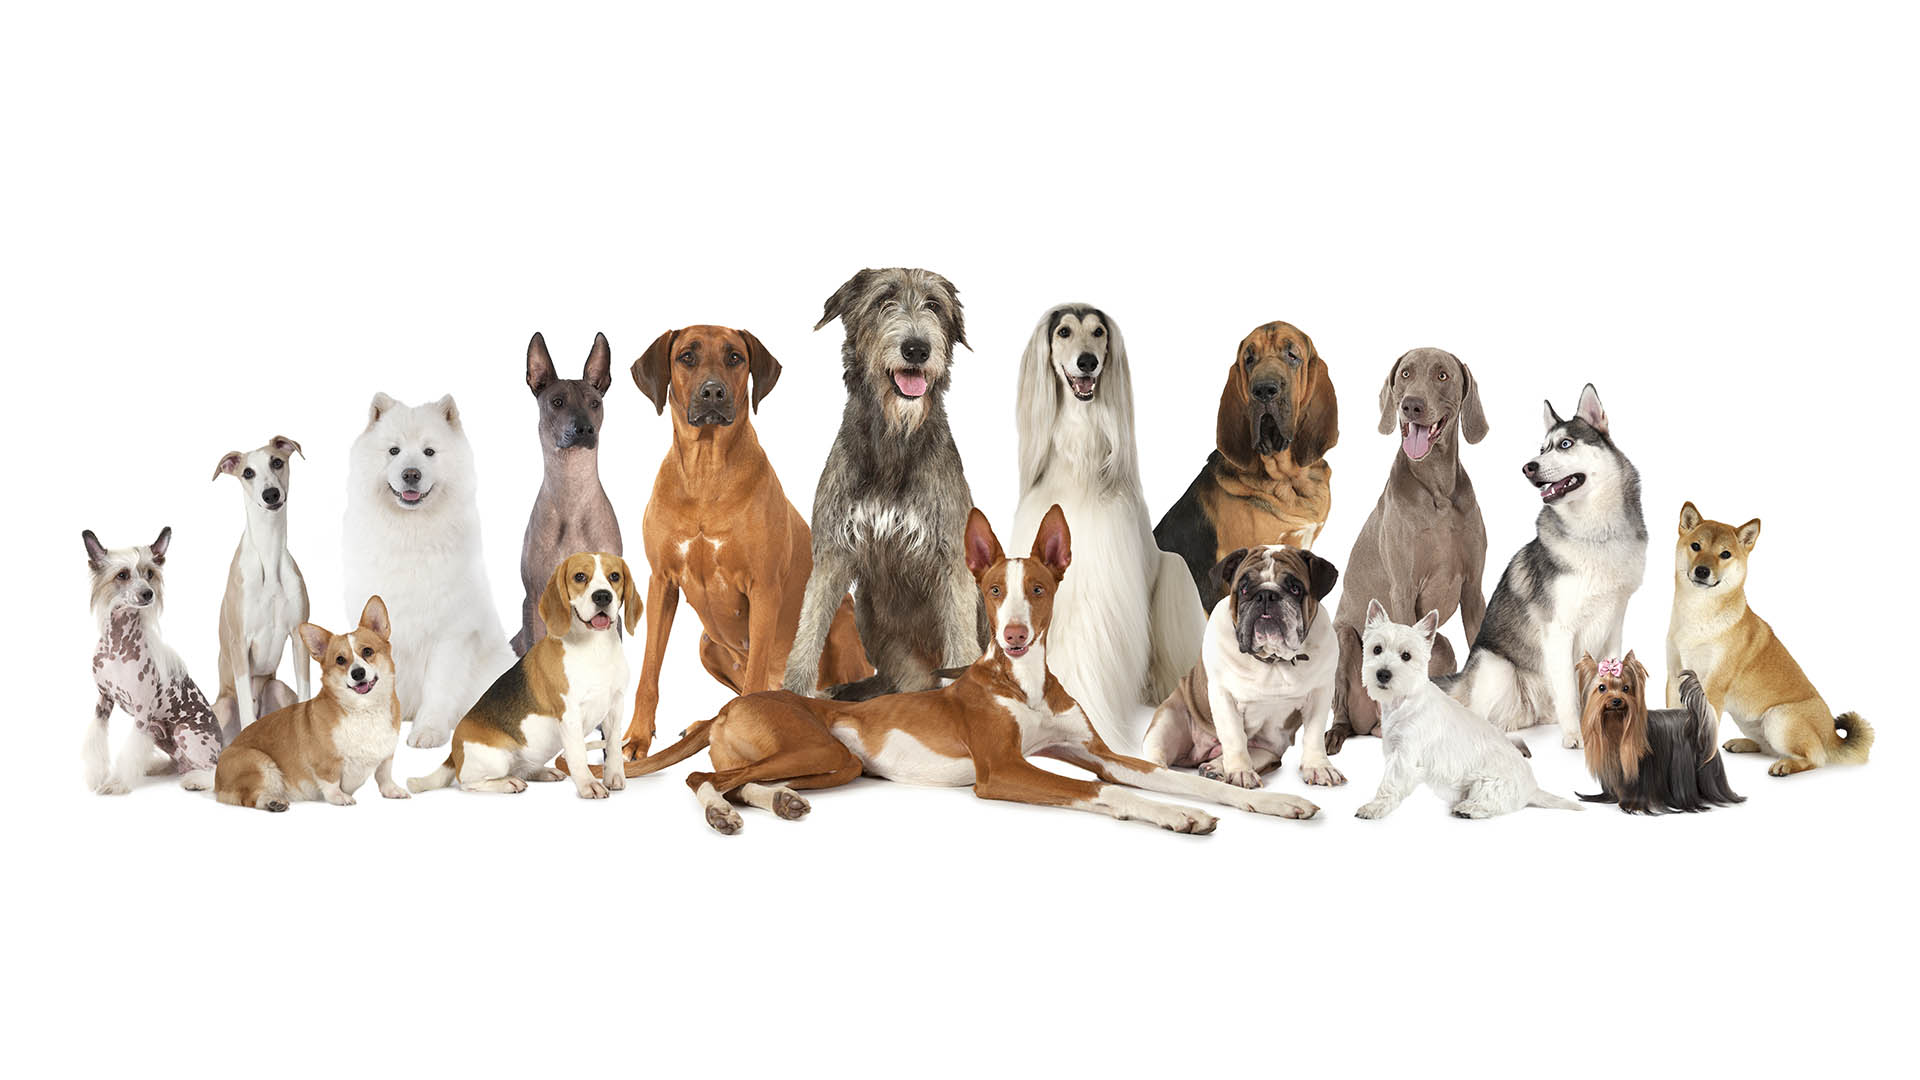 Illustration of a couple dozen different breeds of dogs